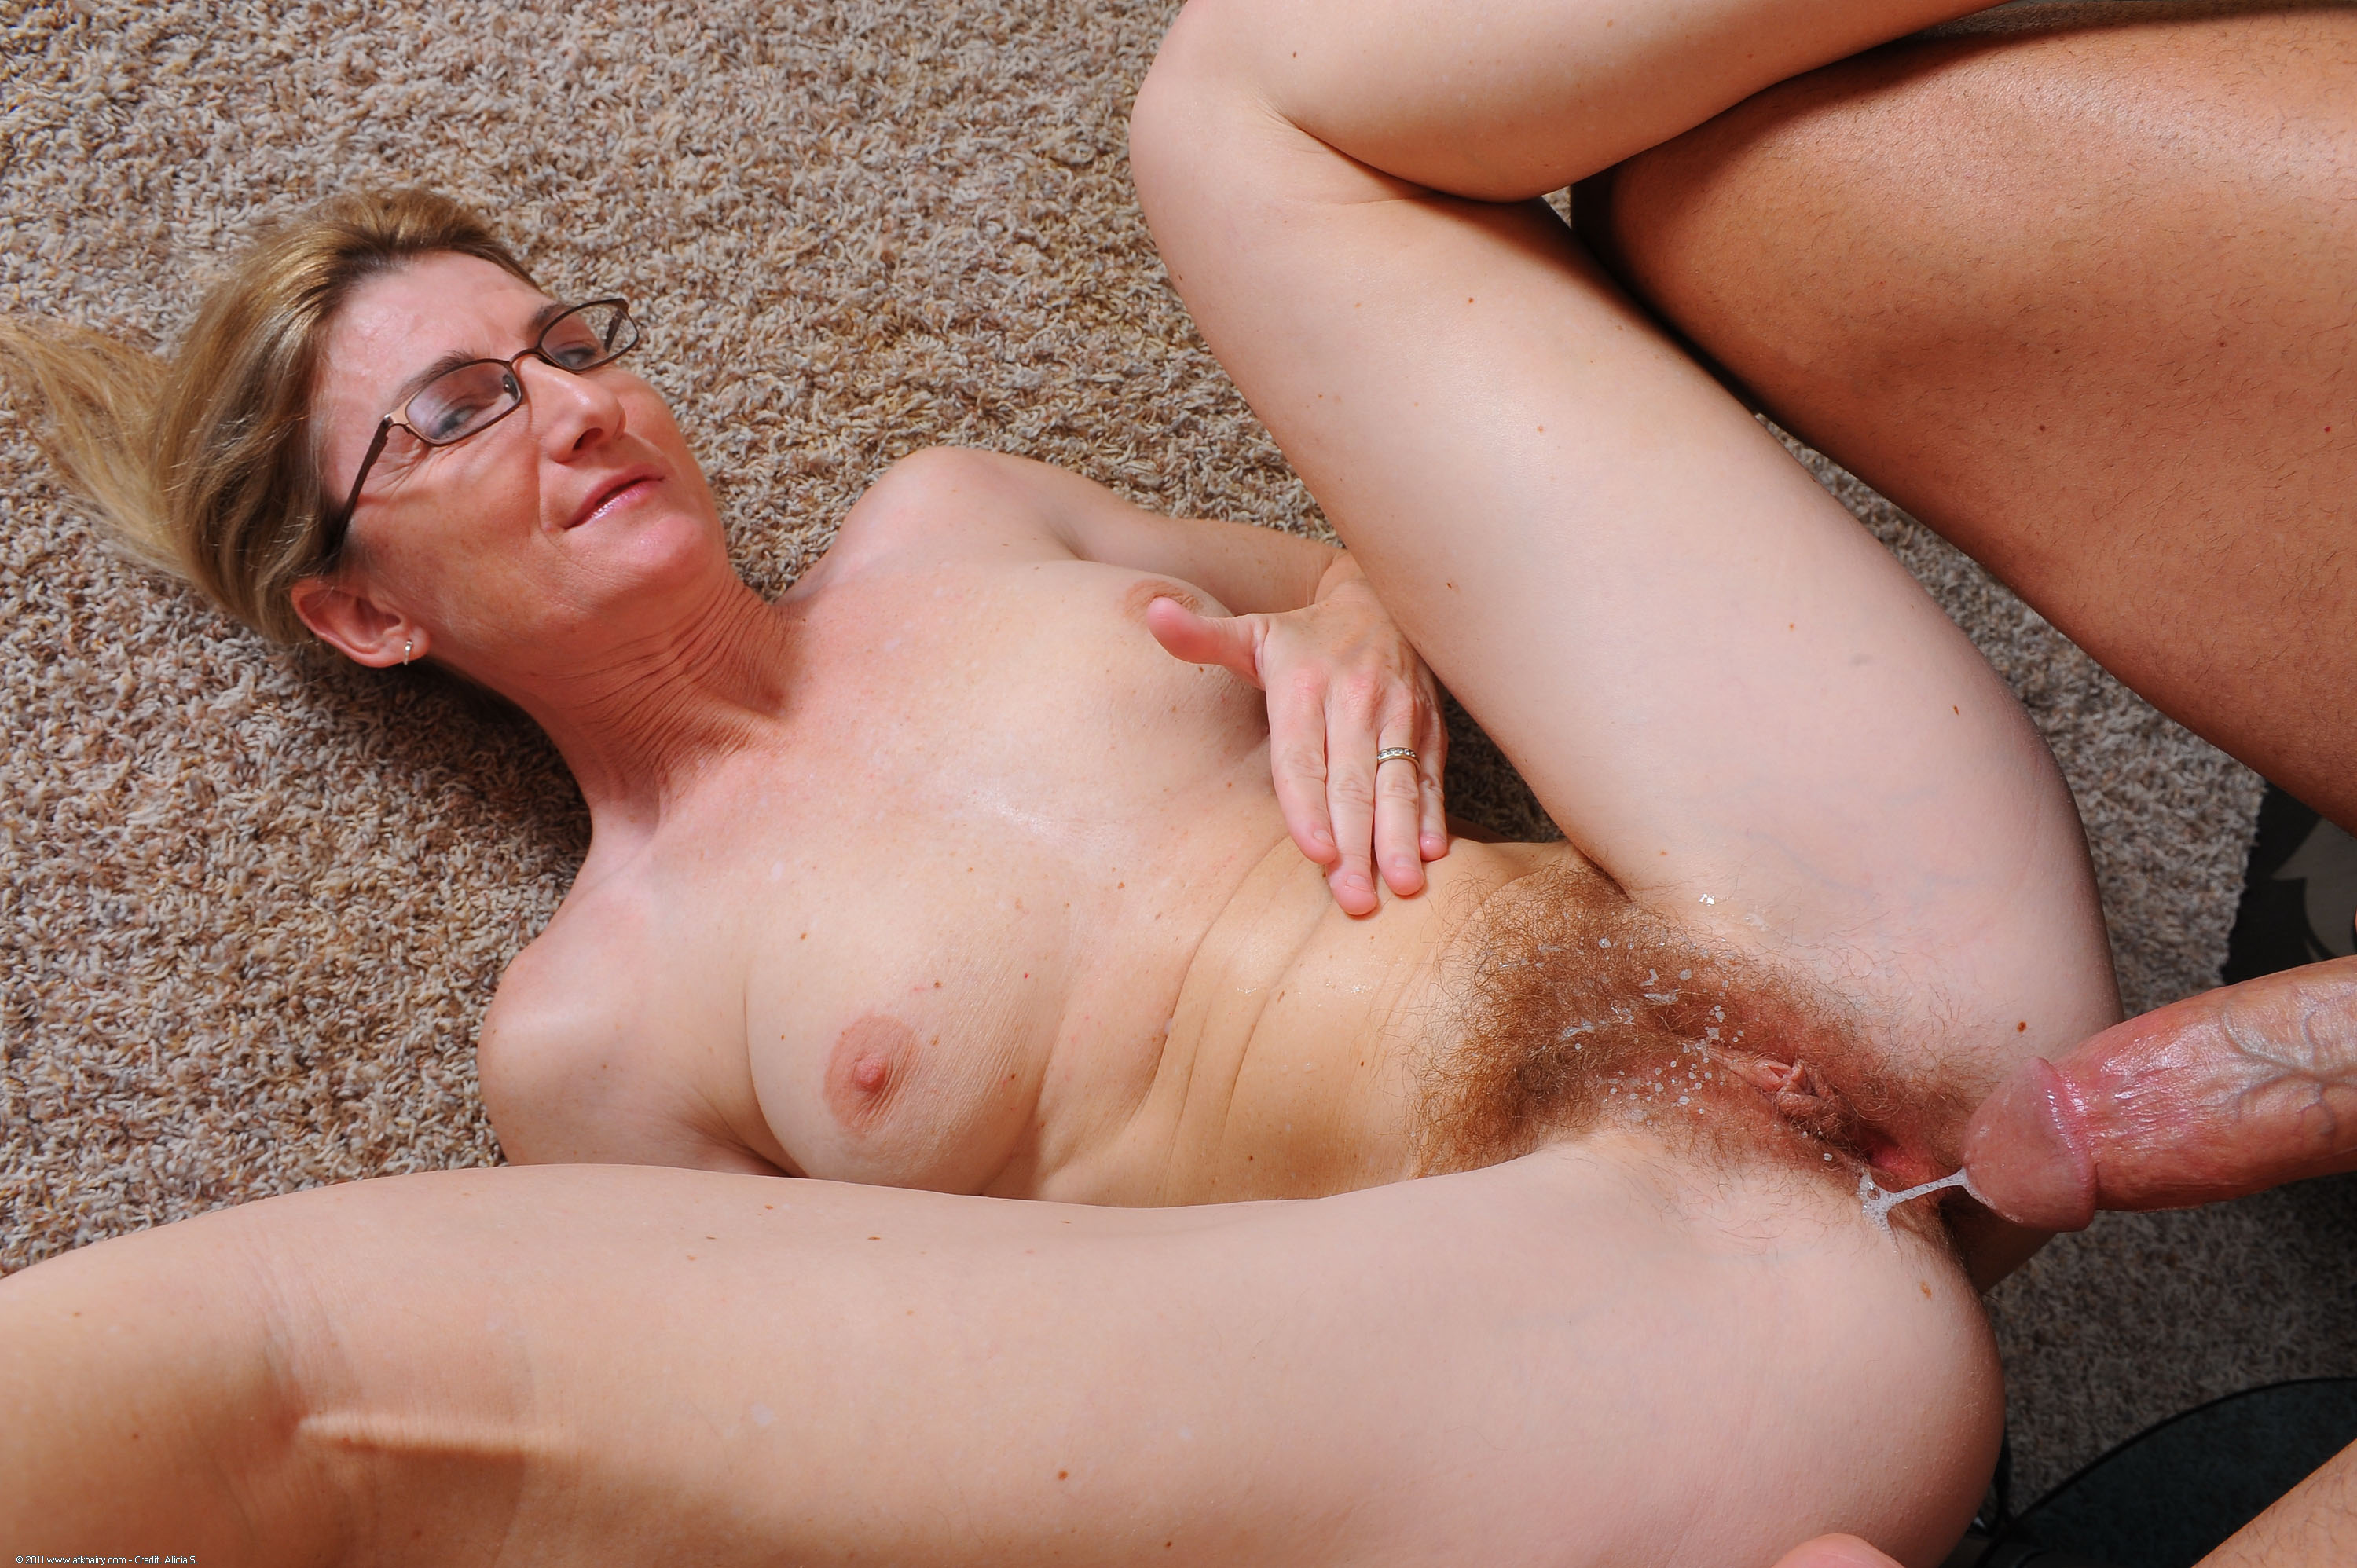 Mature pussies in action, hardcore black sluts free